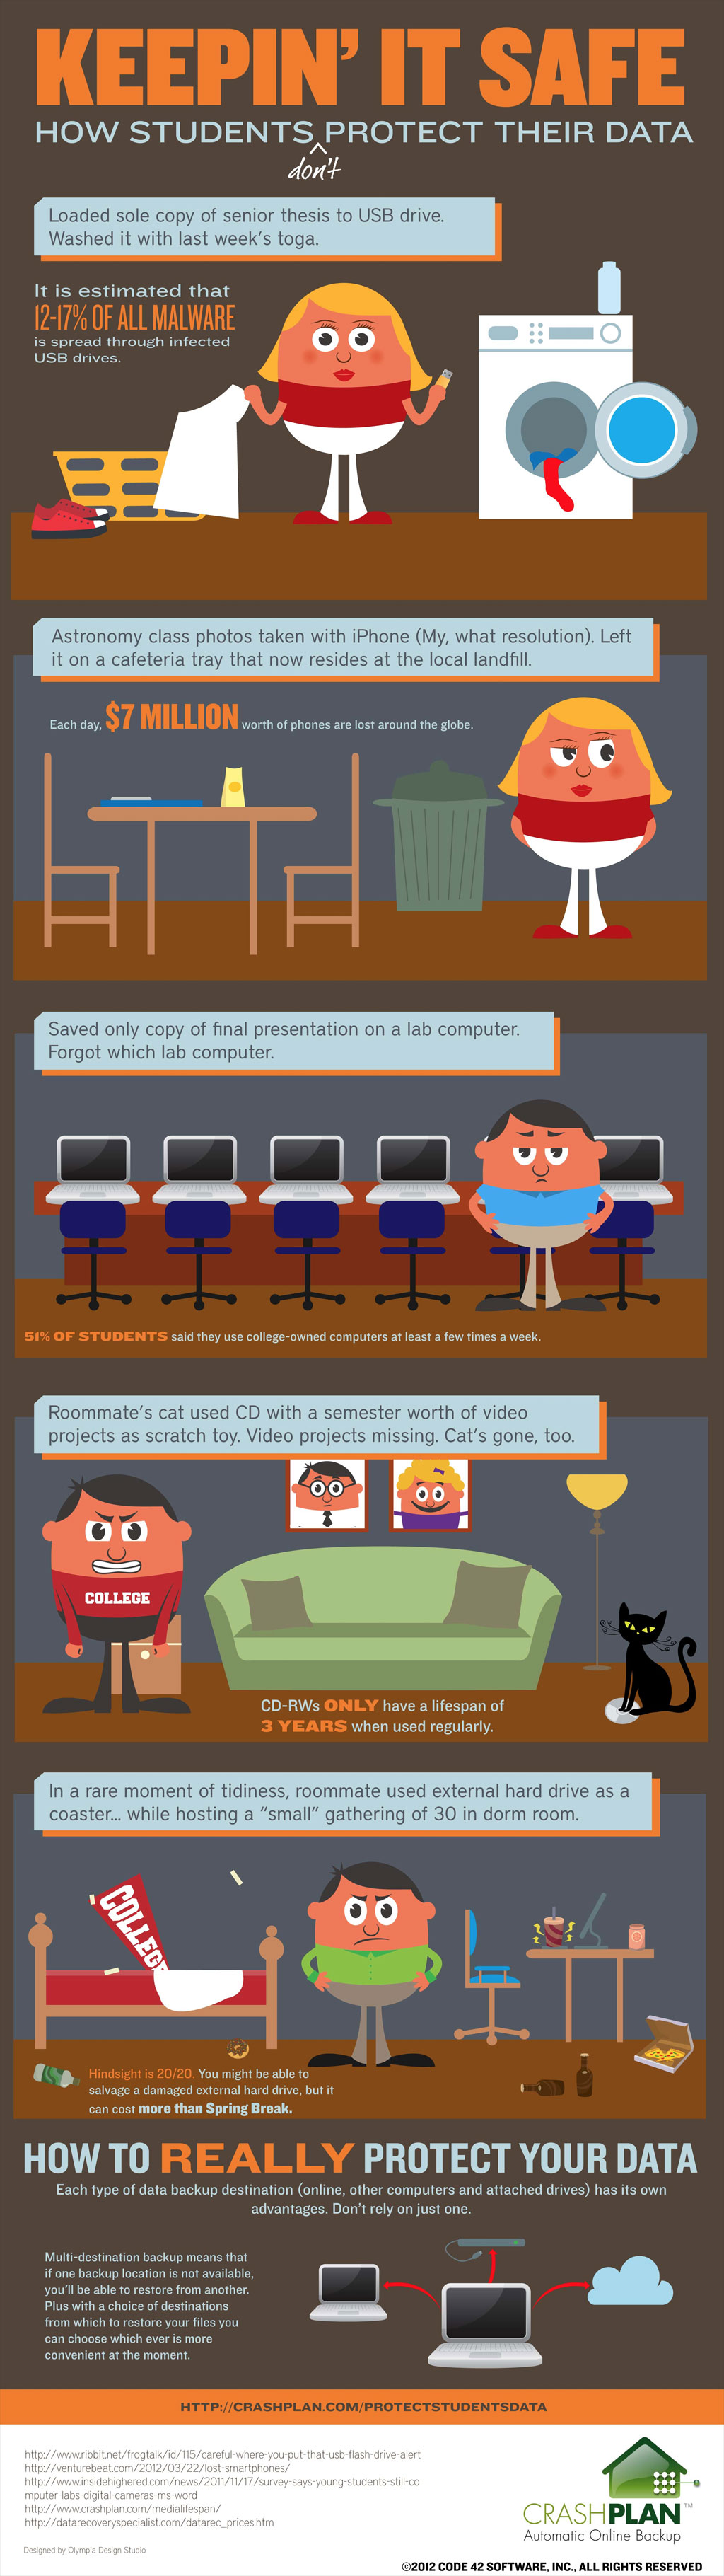 HOW STUDENTS PROTECT THEIR DATA INFOGRAPHIC